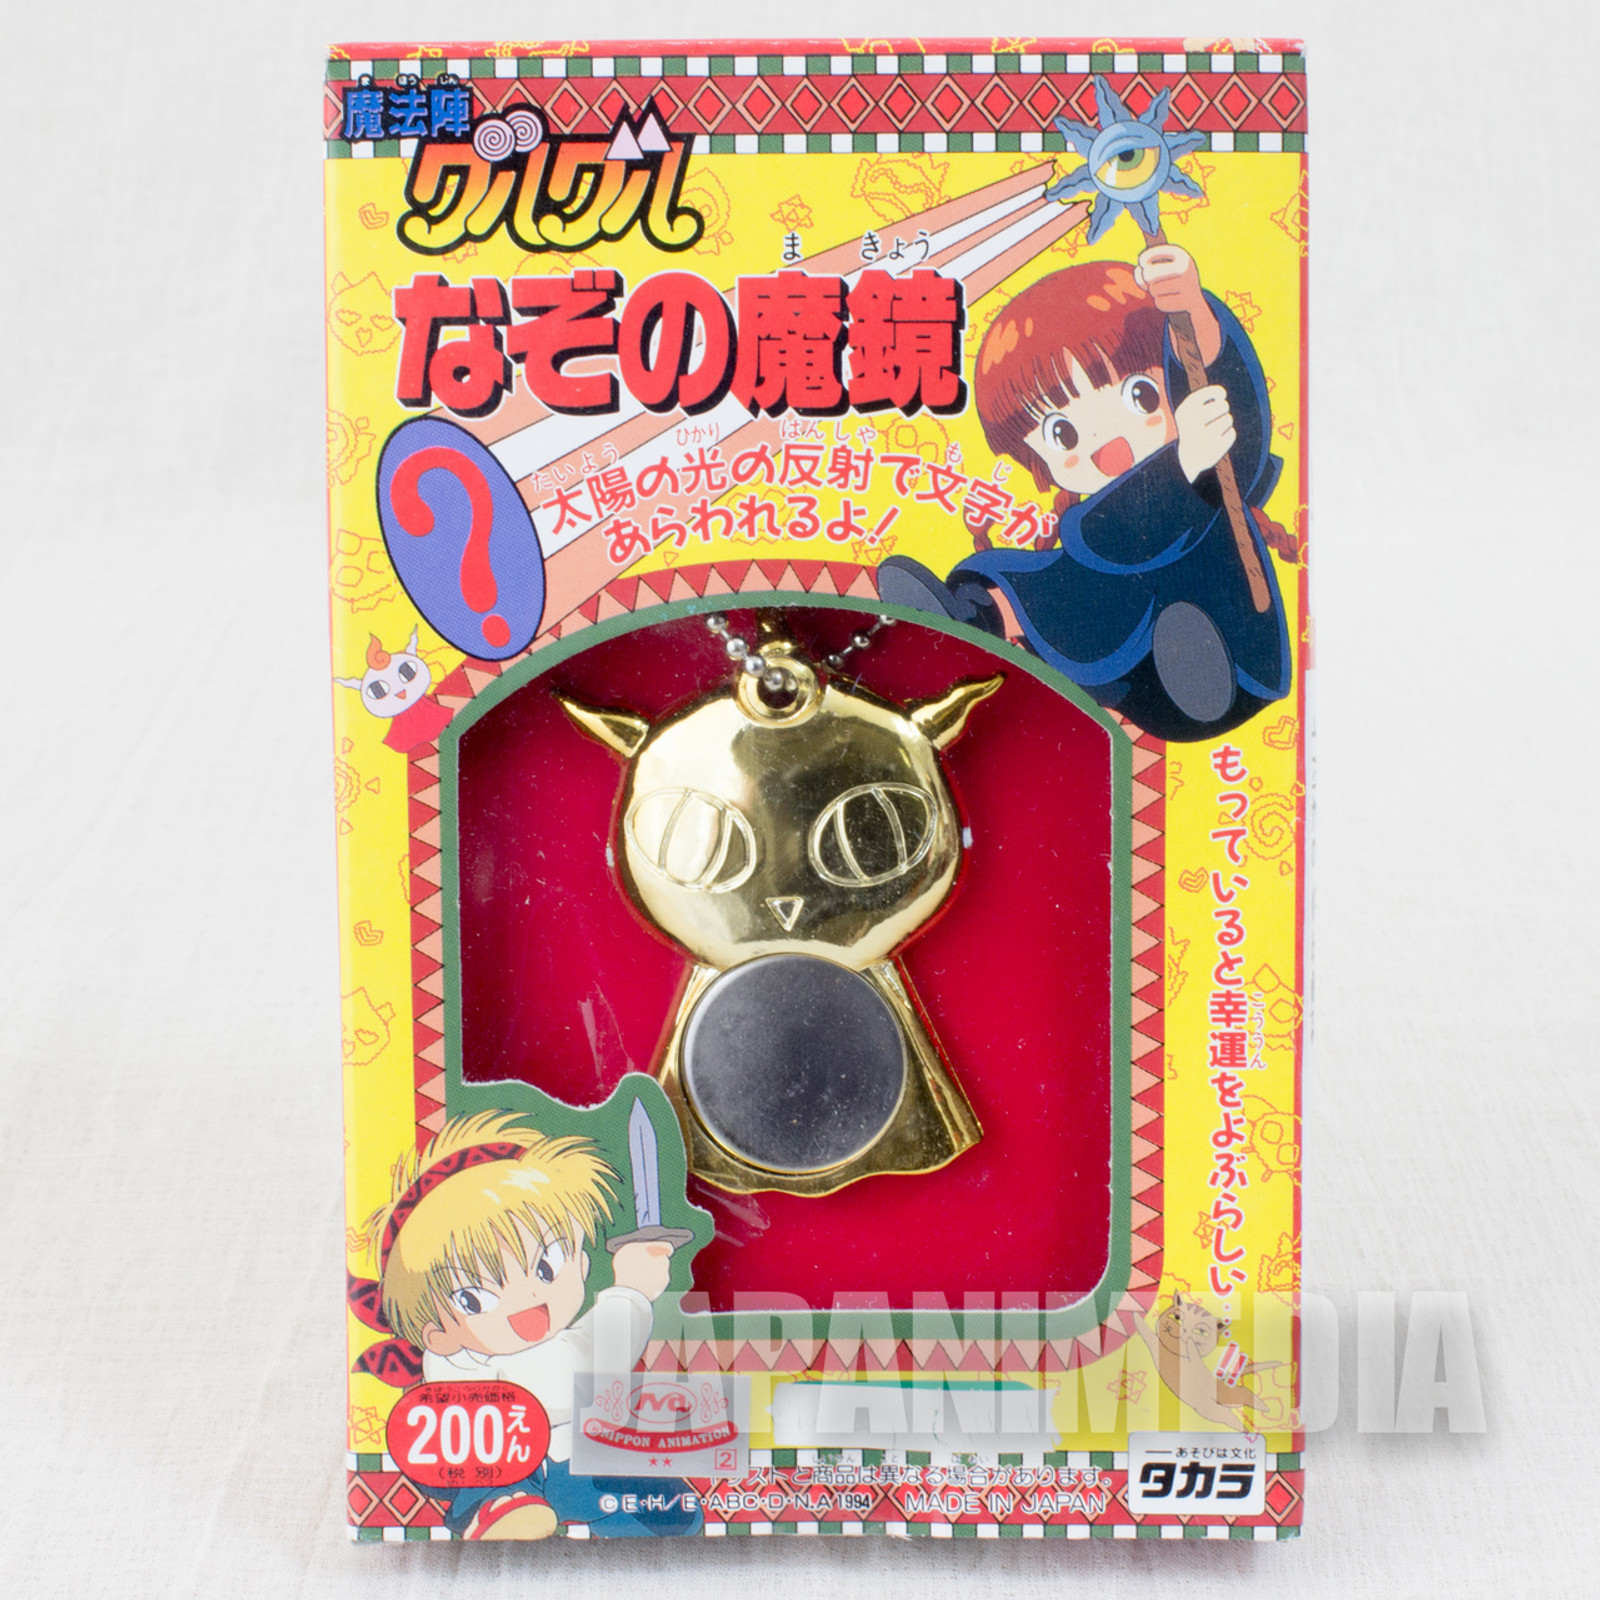 Magical Circle Guru Guru Gipple Magical Mirror Ball keychain JAPAN ANIME MANGA